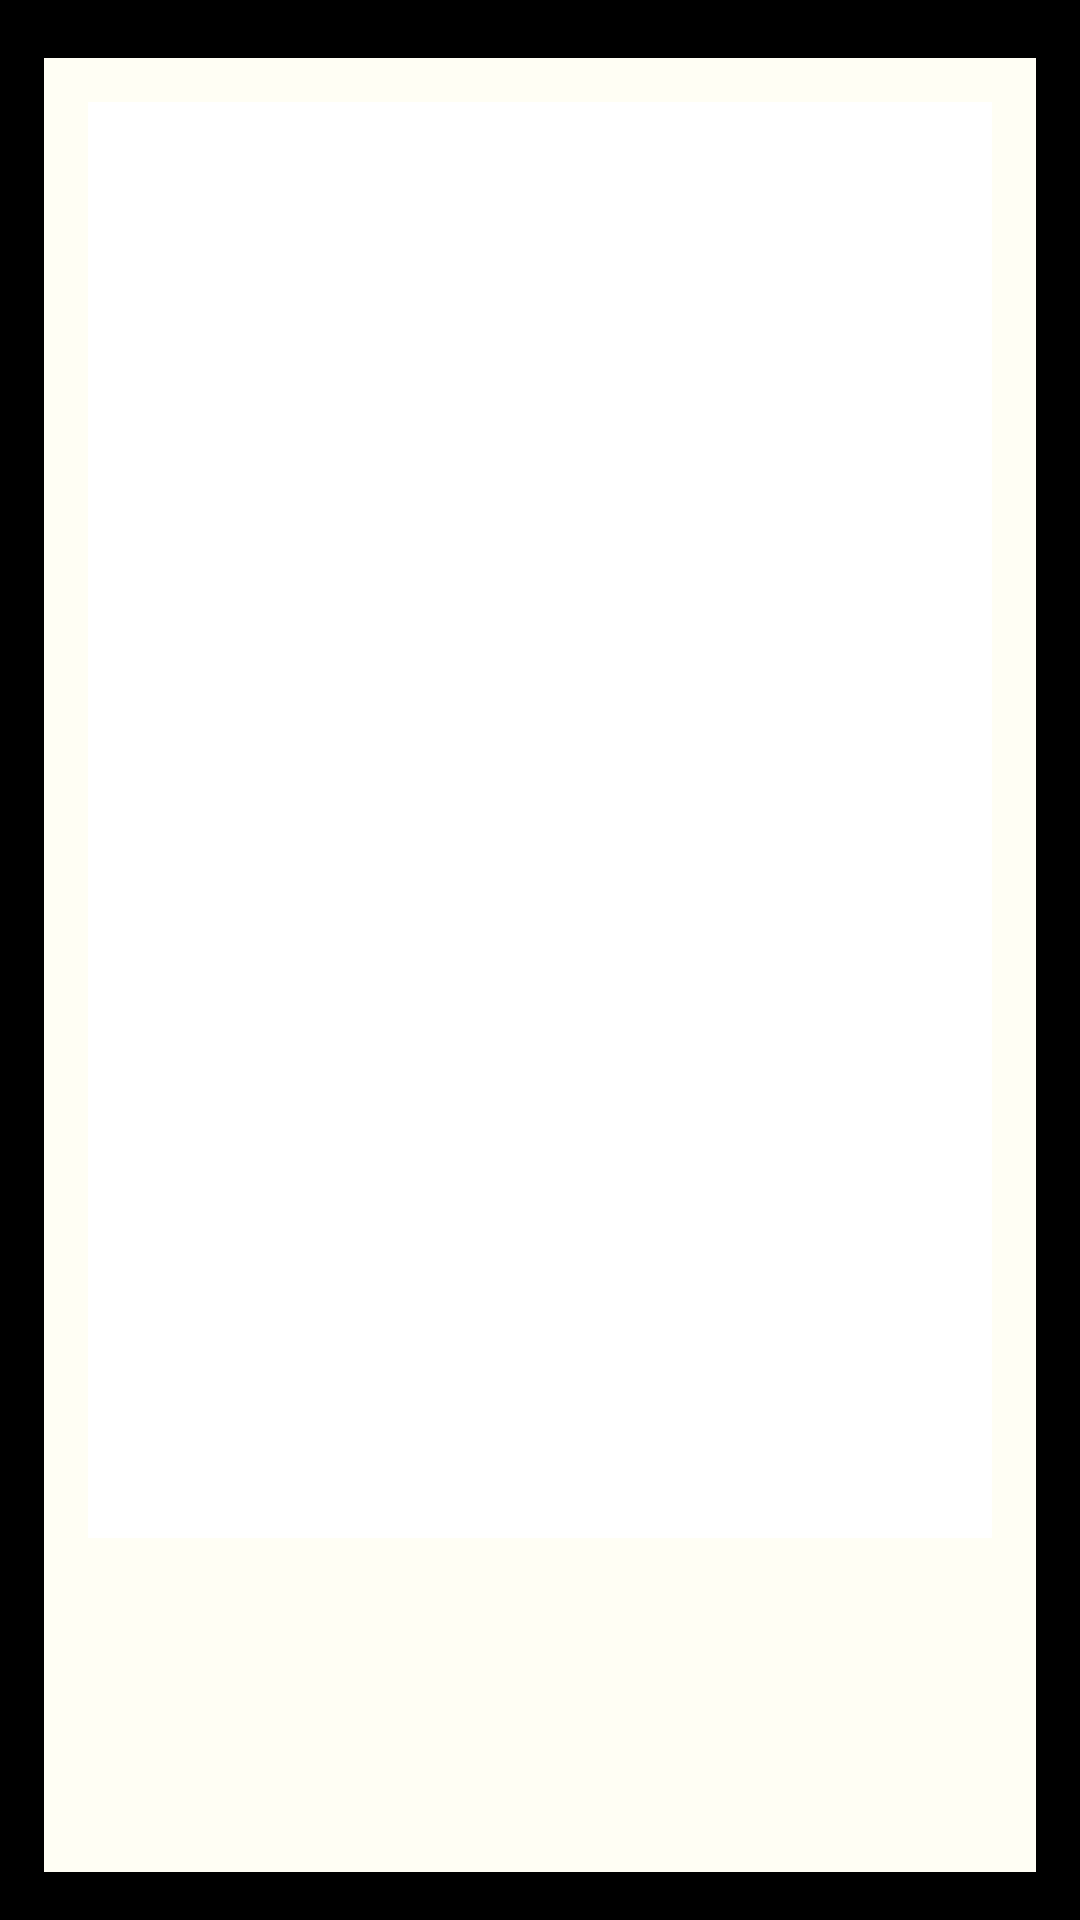 Snapchat template png. Polaroid filter geofilter maker